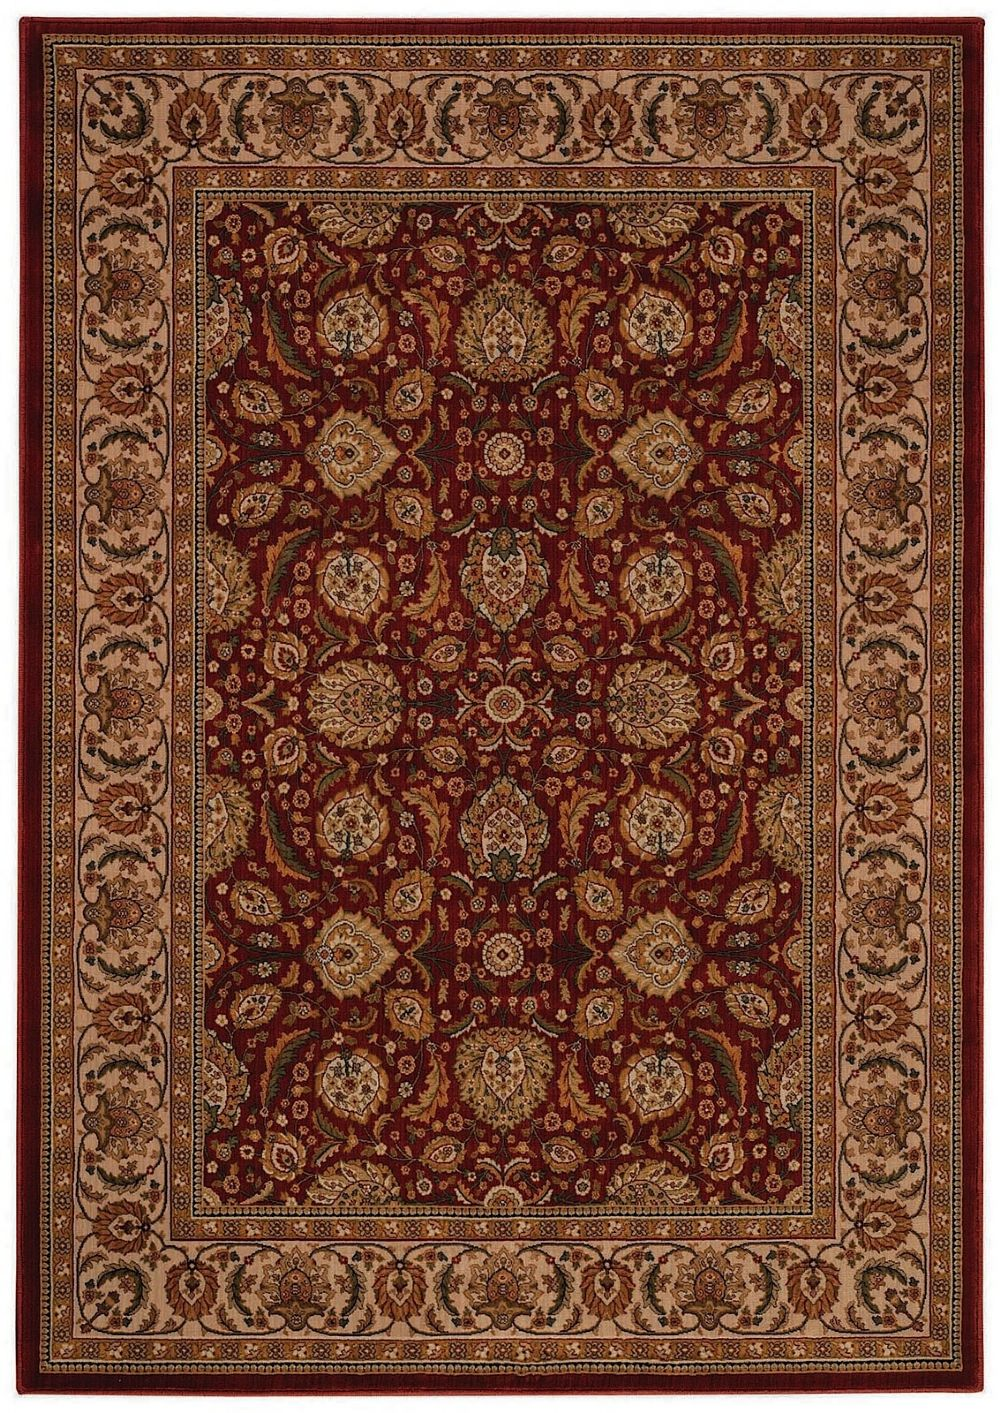 capel martinez-ziegler traditional area rug collection